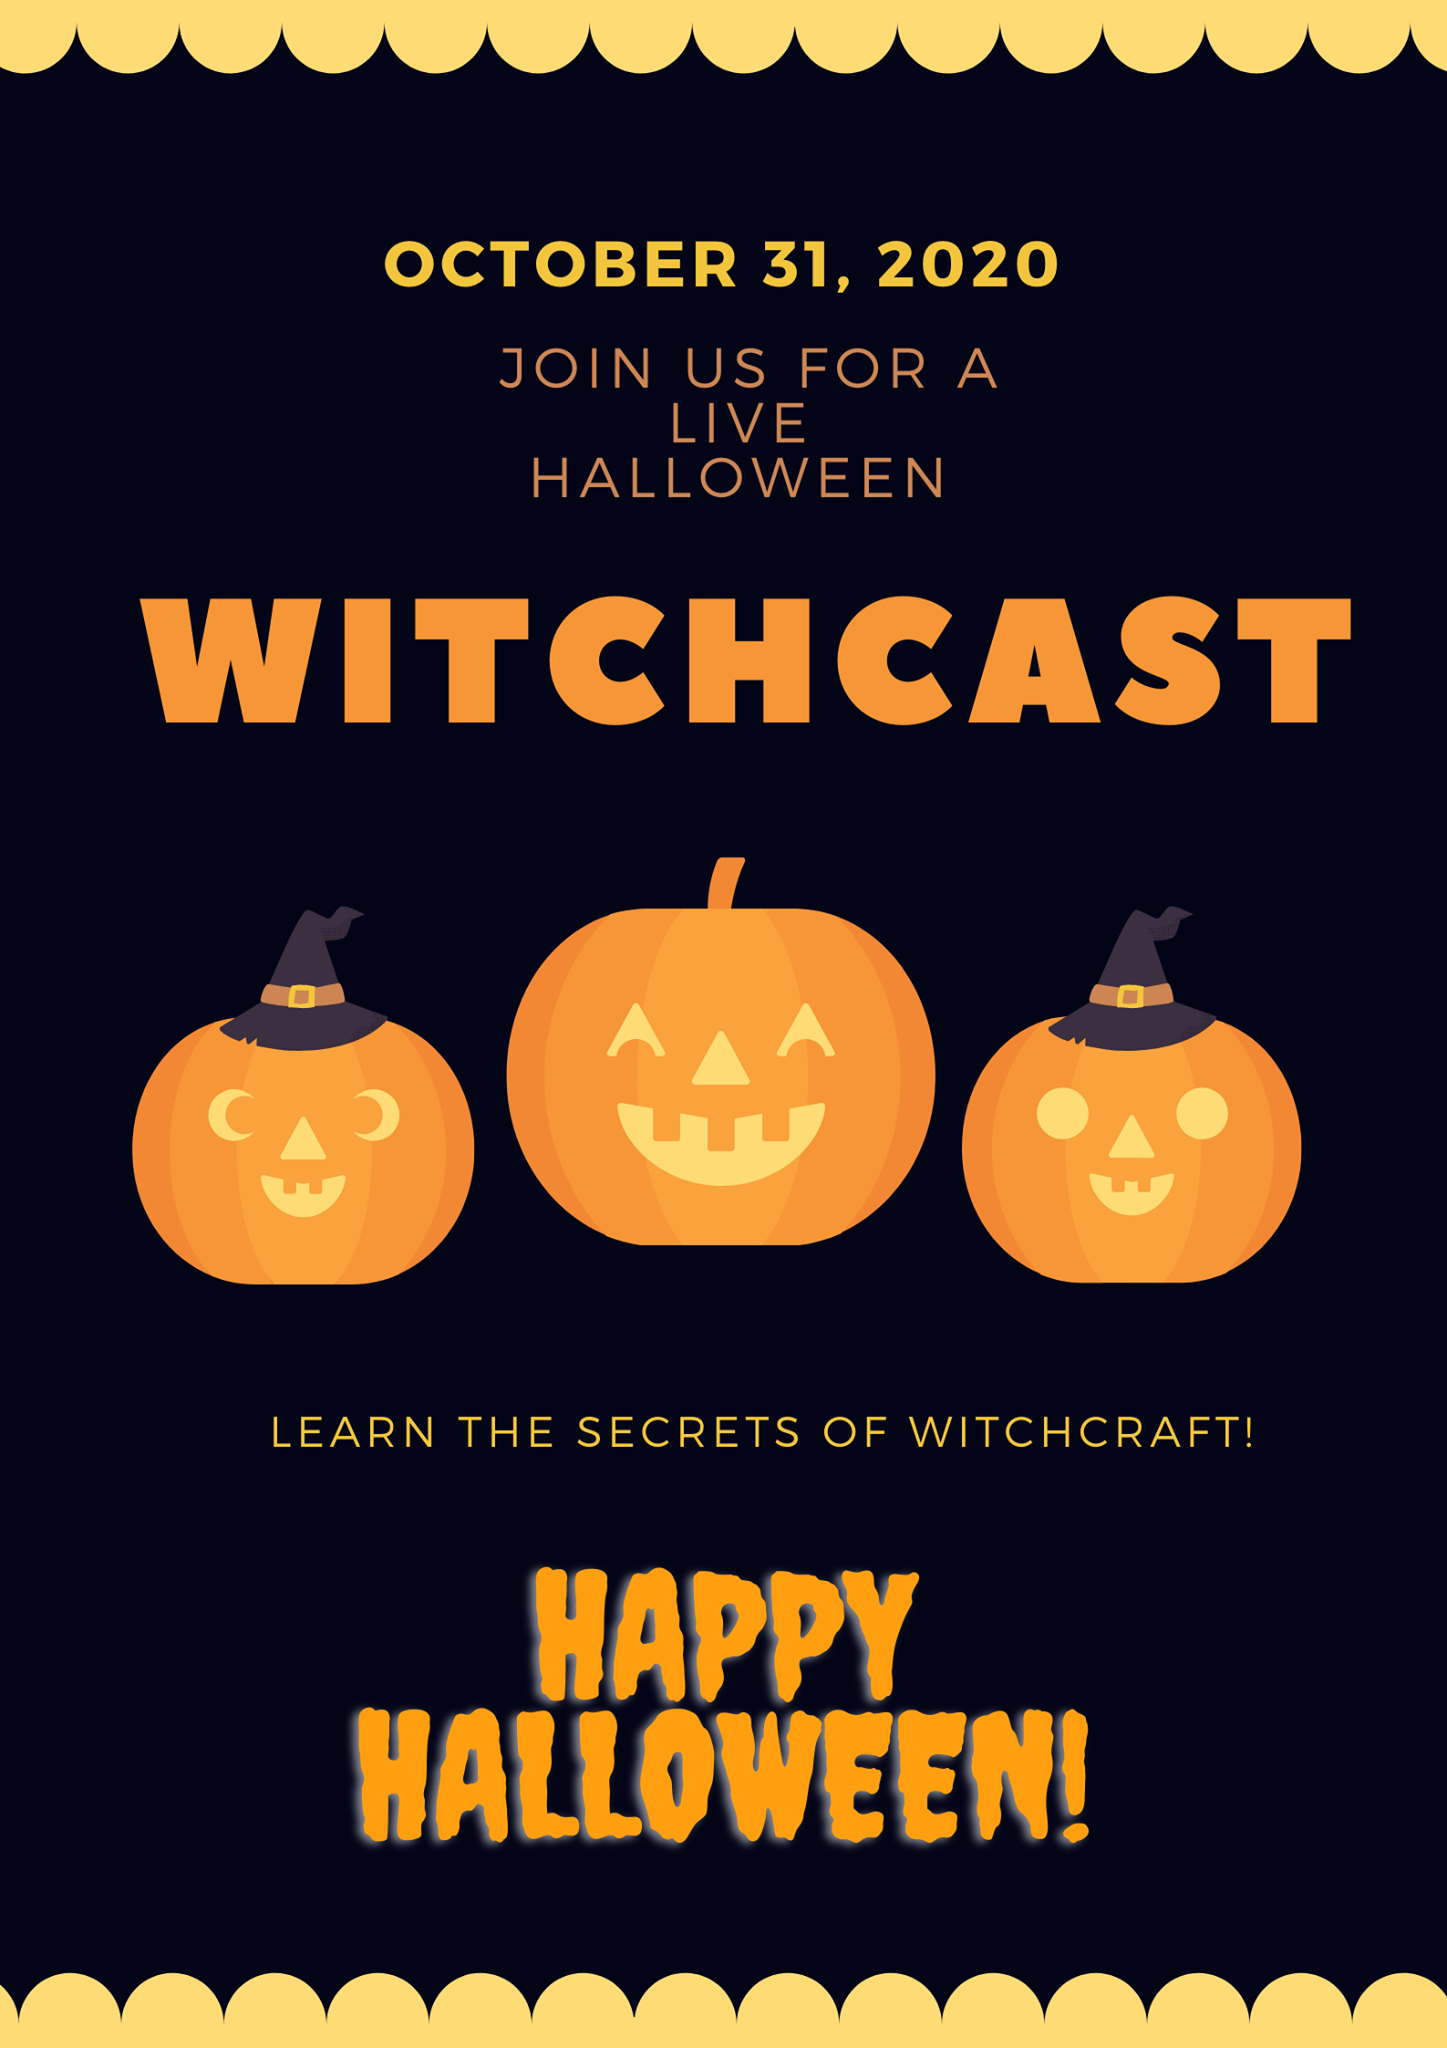 LIVE WITCHCAST TONIGHT!